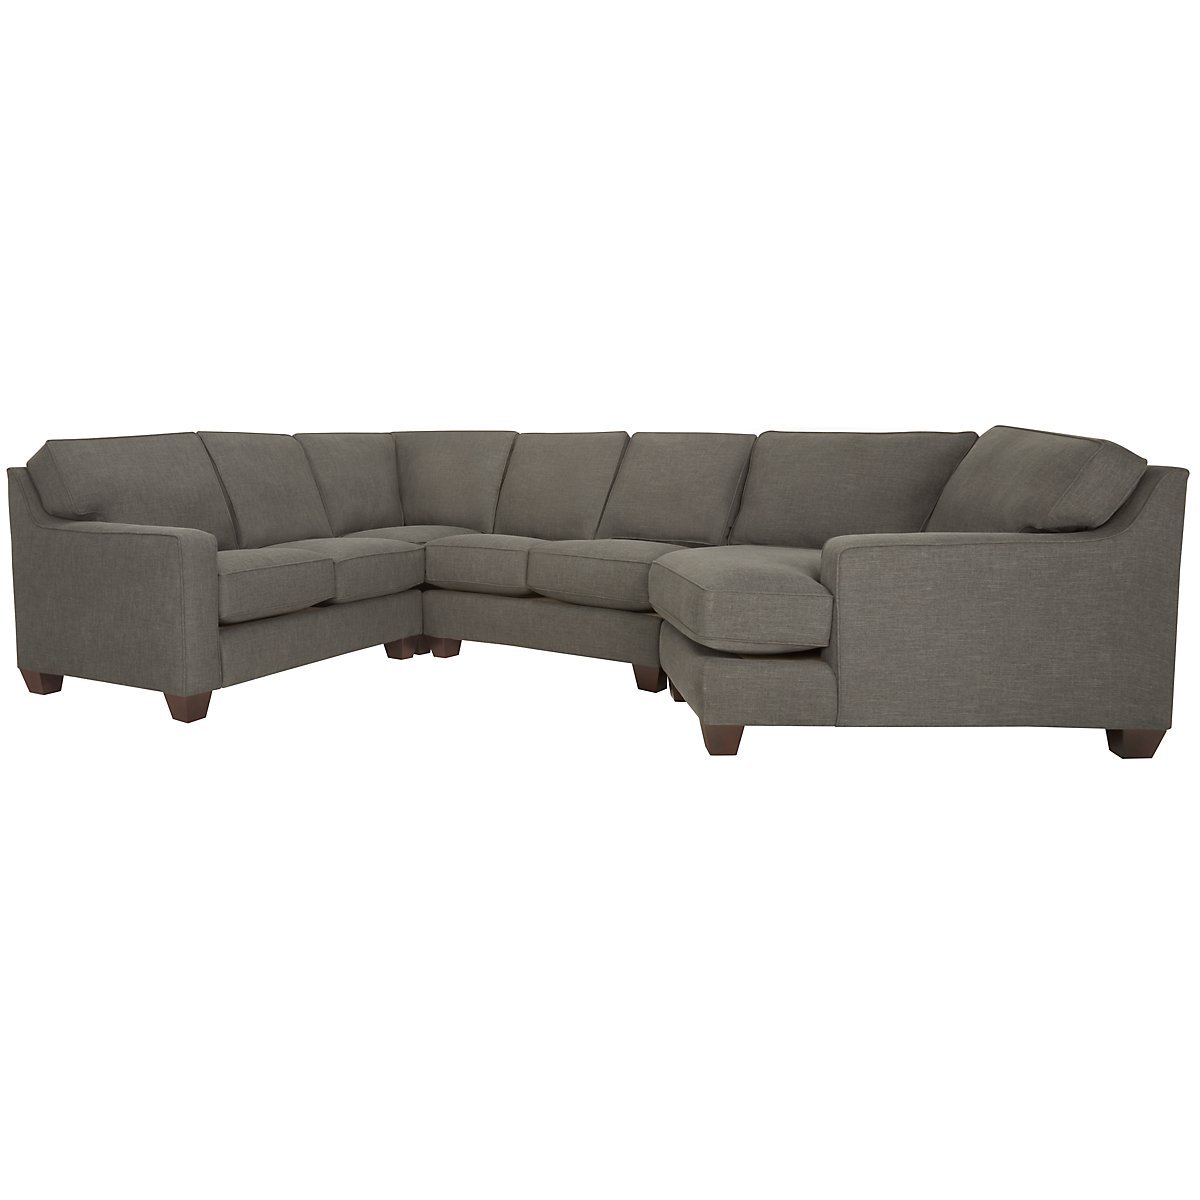 City furniture york dark gray fabric small right cuddler for Small sectional sofa with cuddler